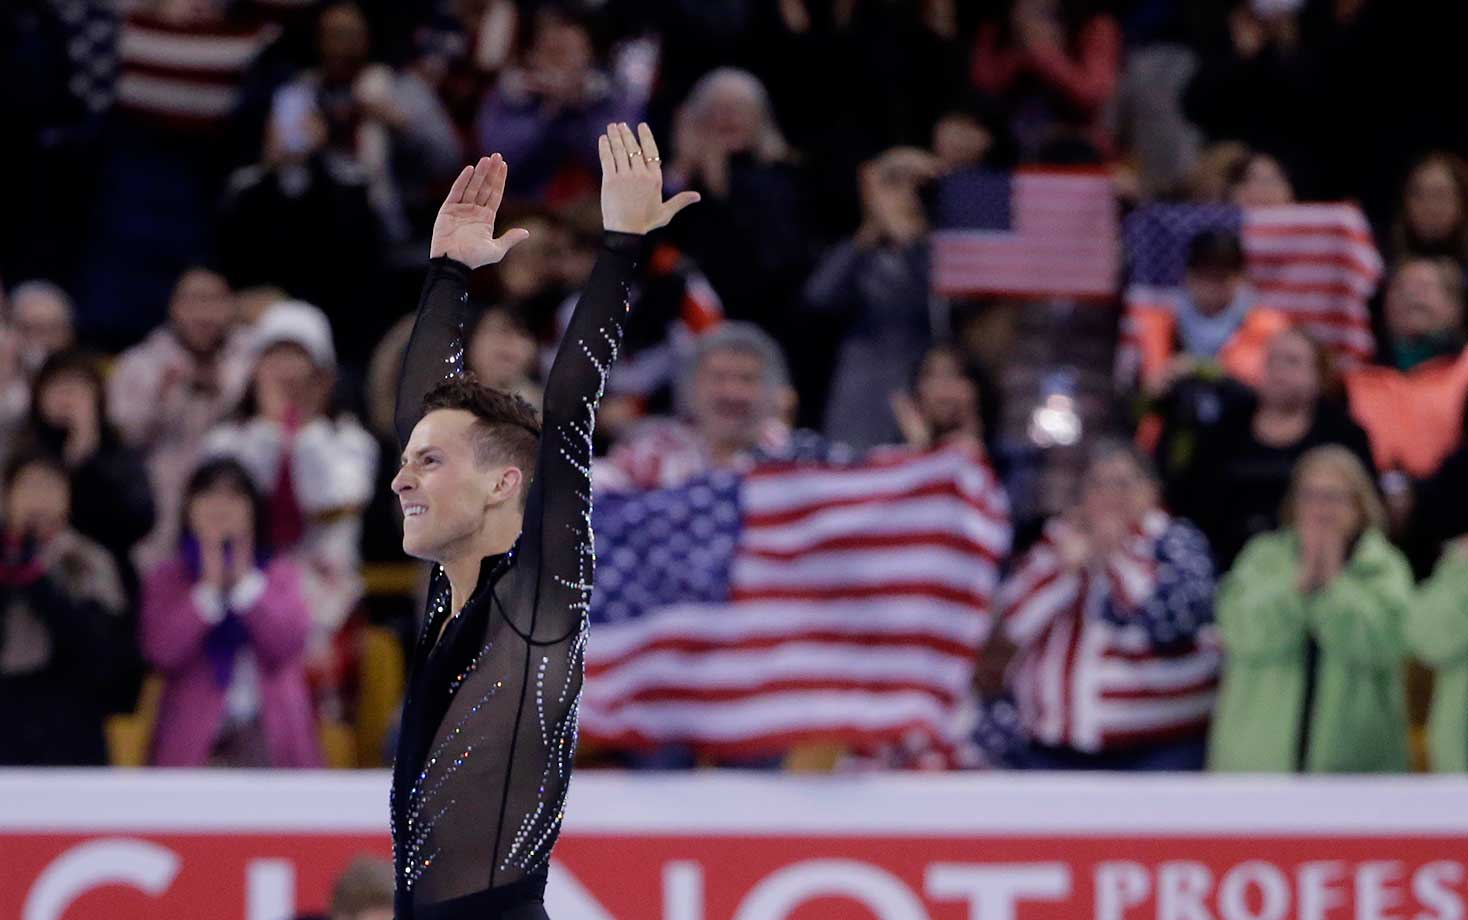 Adam Rippon of the United States after his routine during the short program in the World Figure Skating Championships.